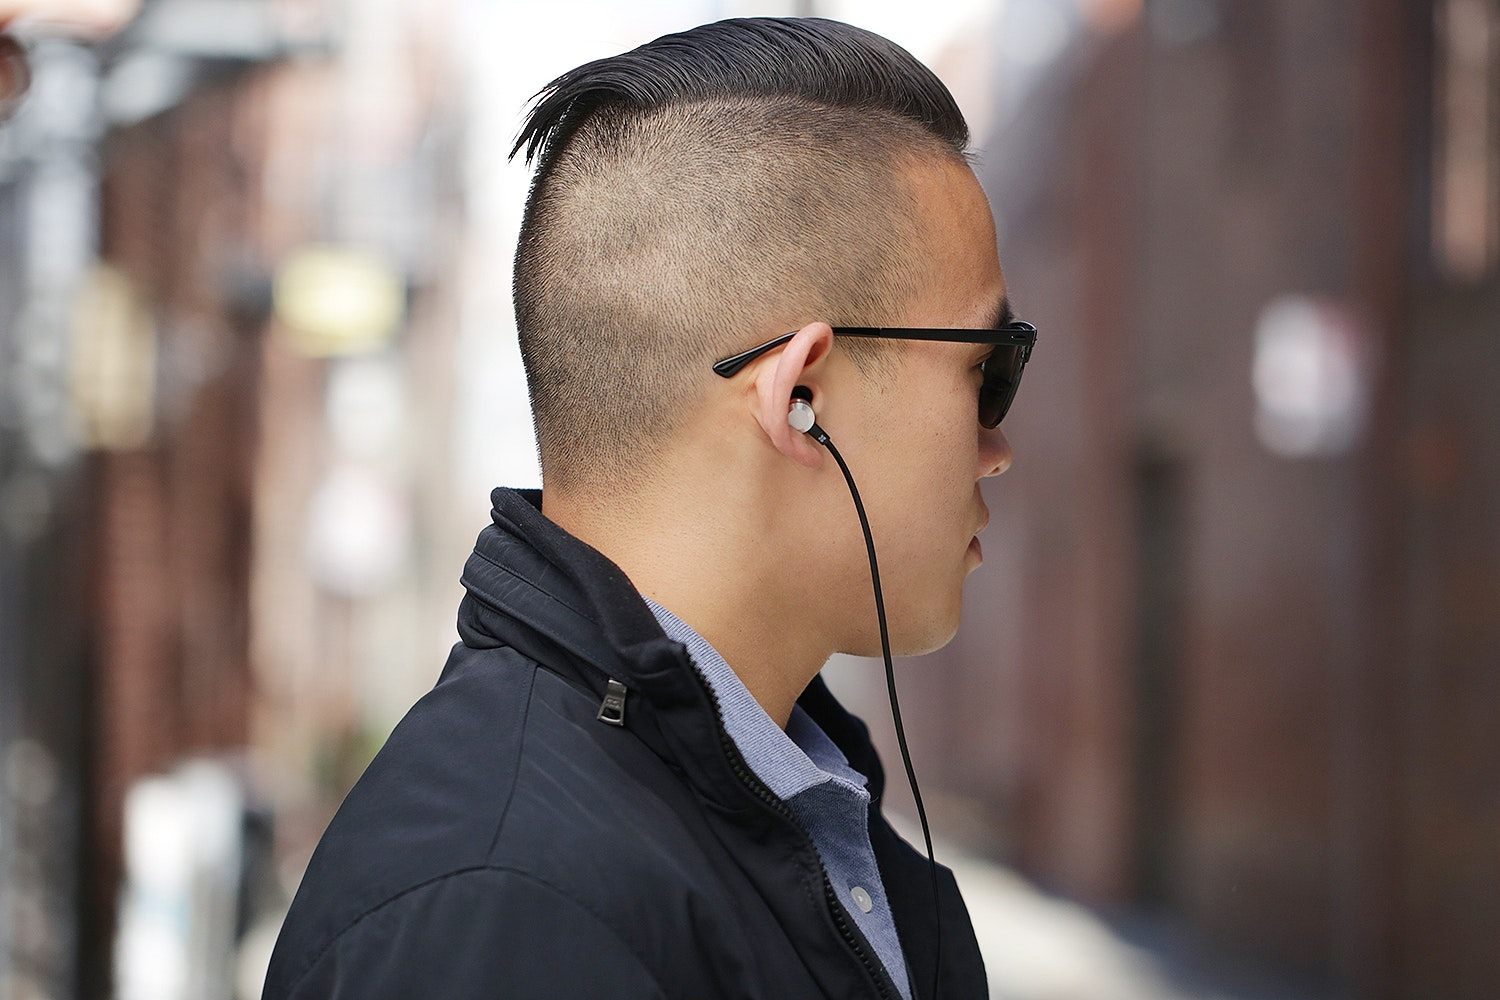 Massdrop x HIFIMAN Bolt In-Ear Monitors